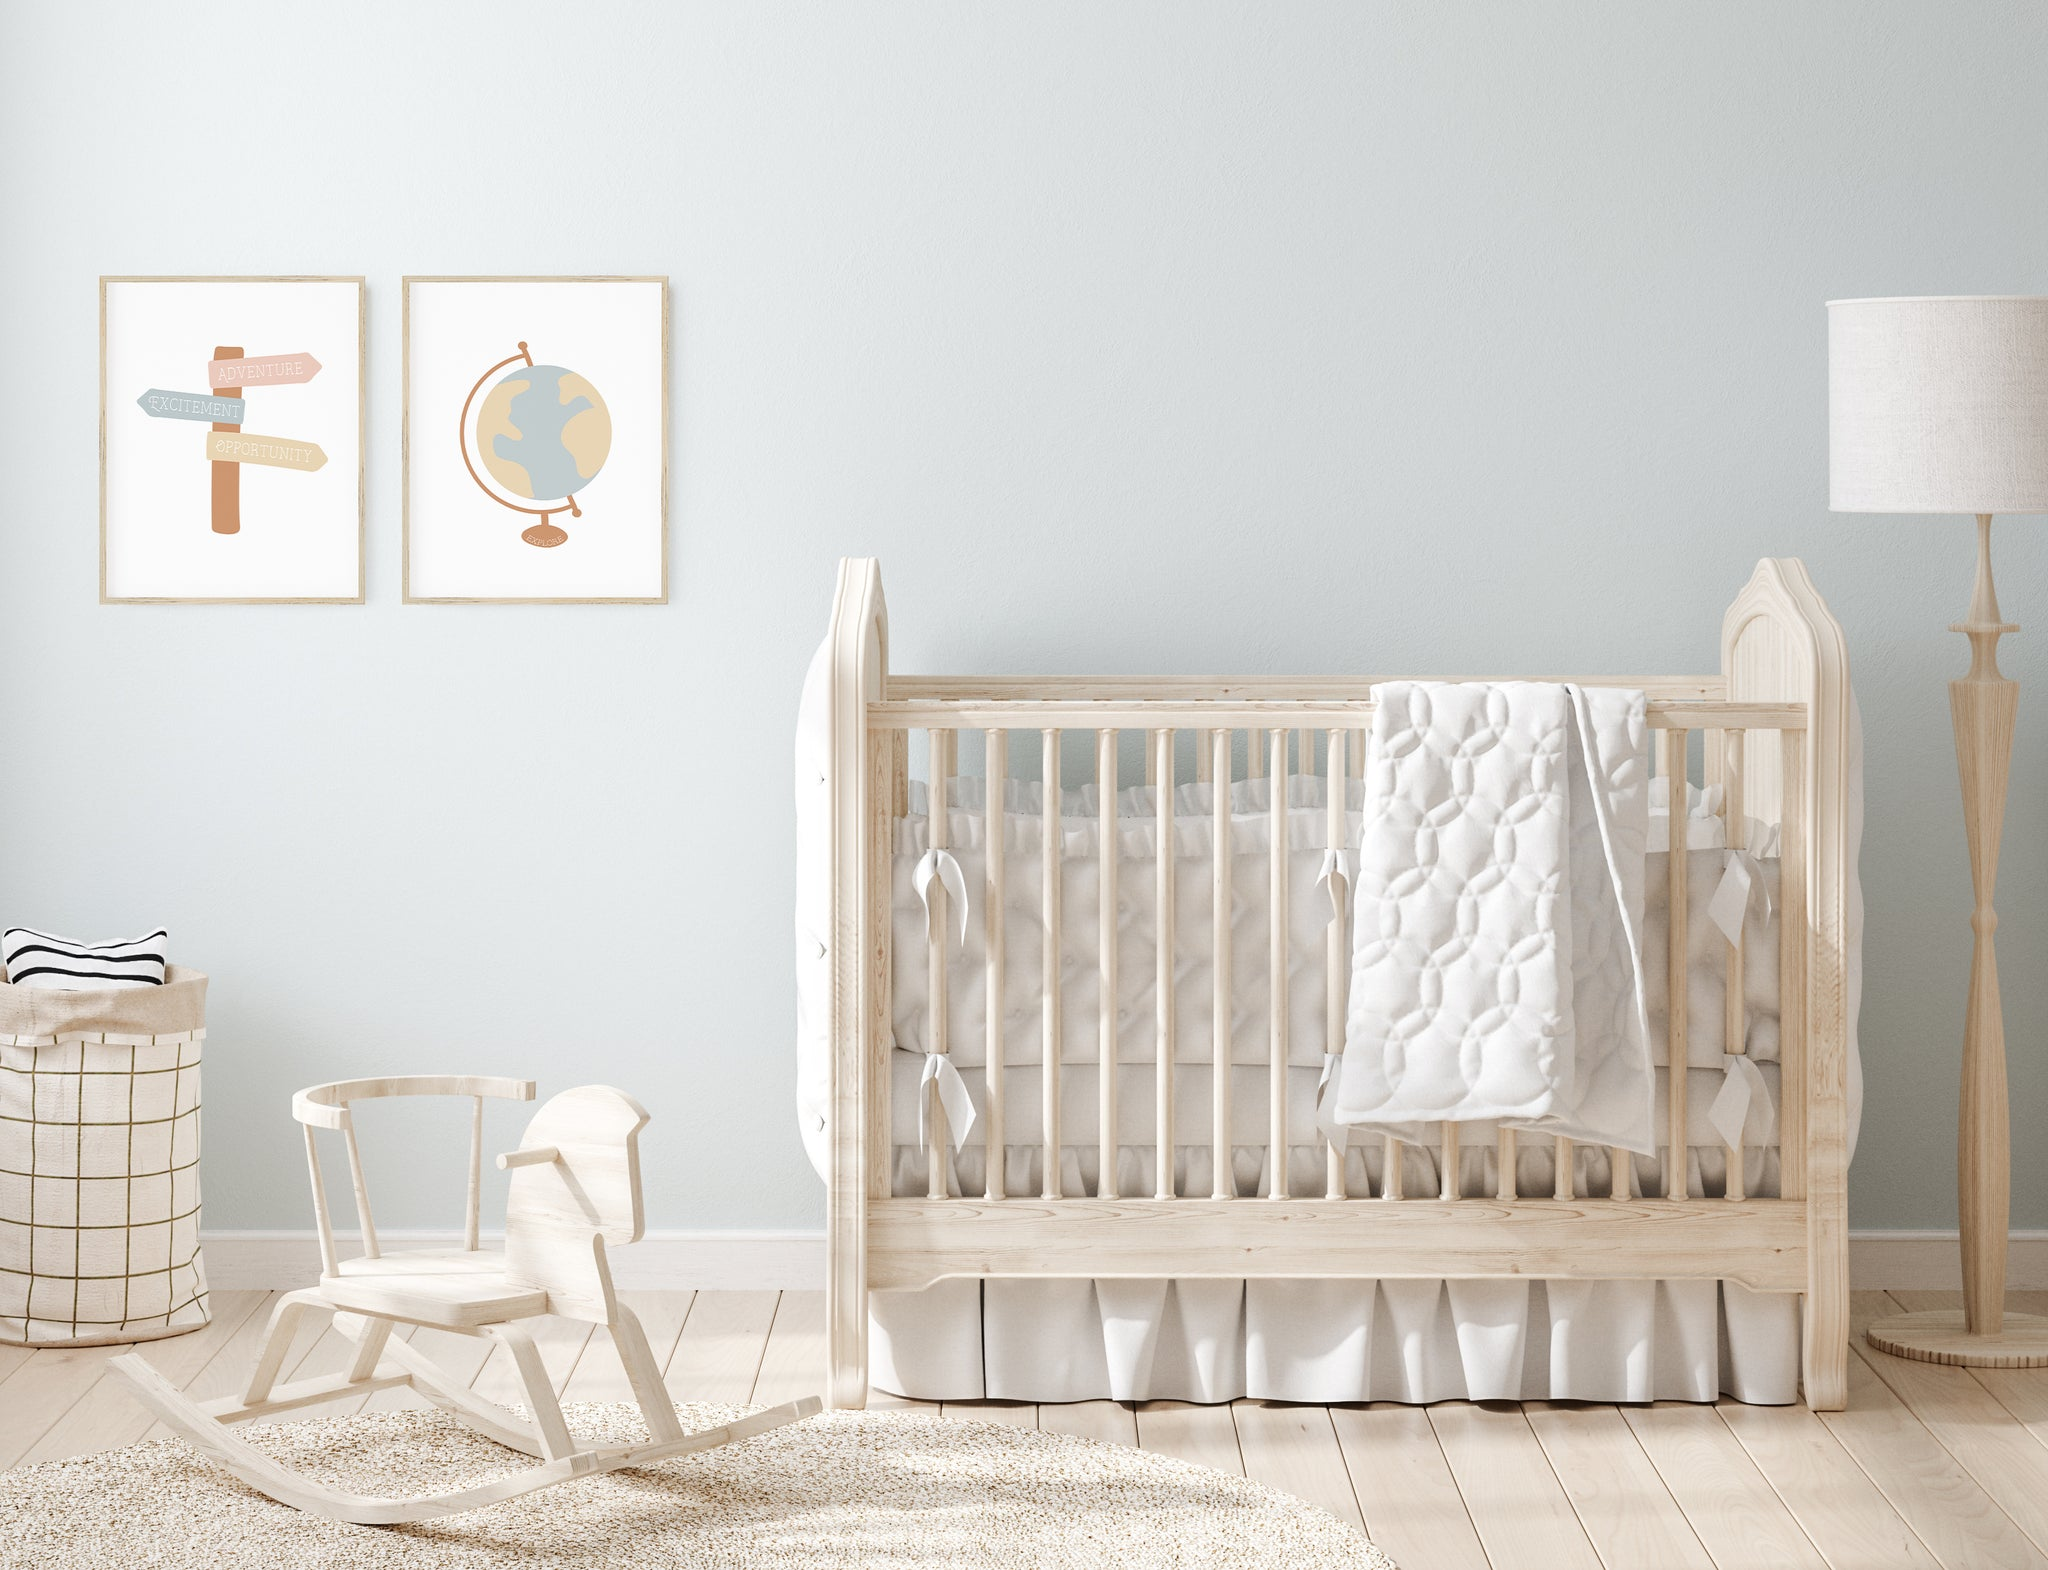 Nursery with blue wall, light wood furniture and travel art